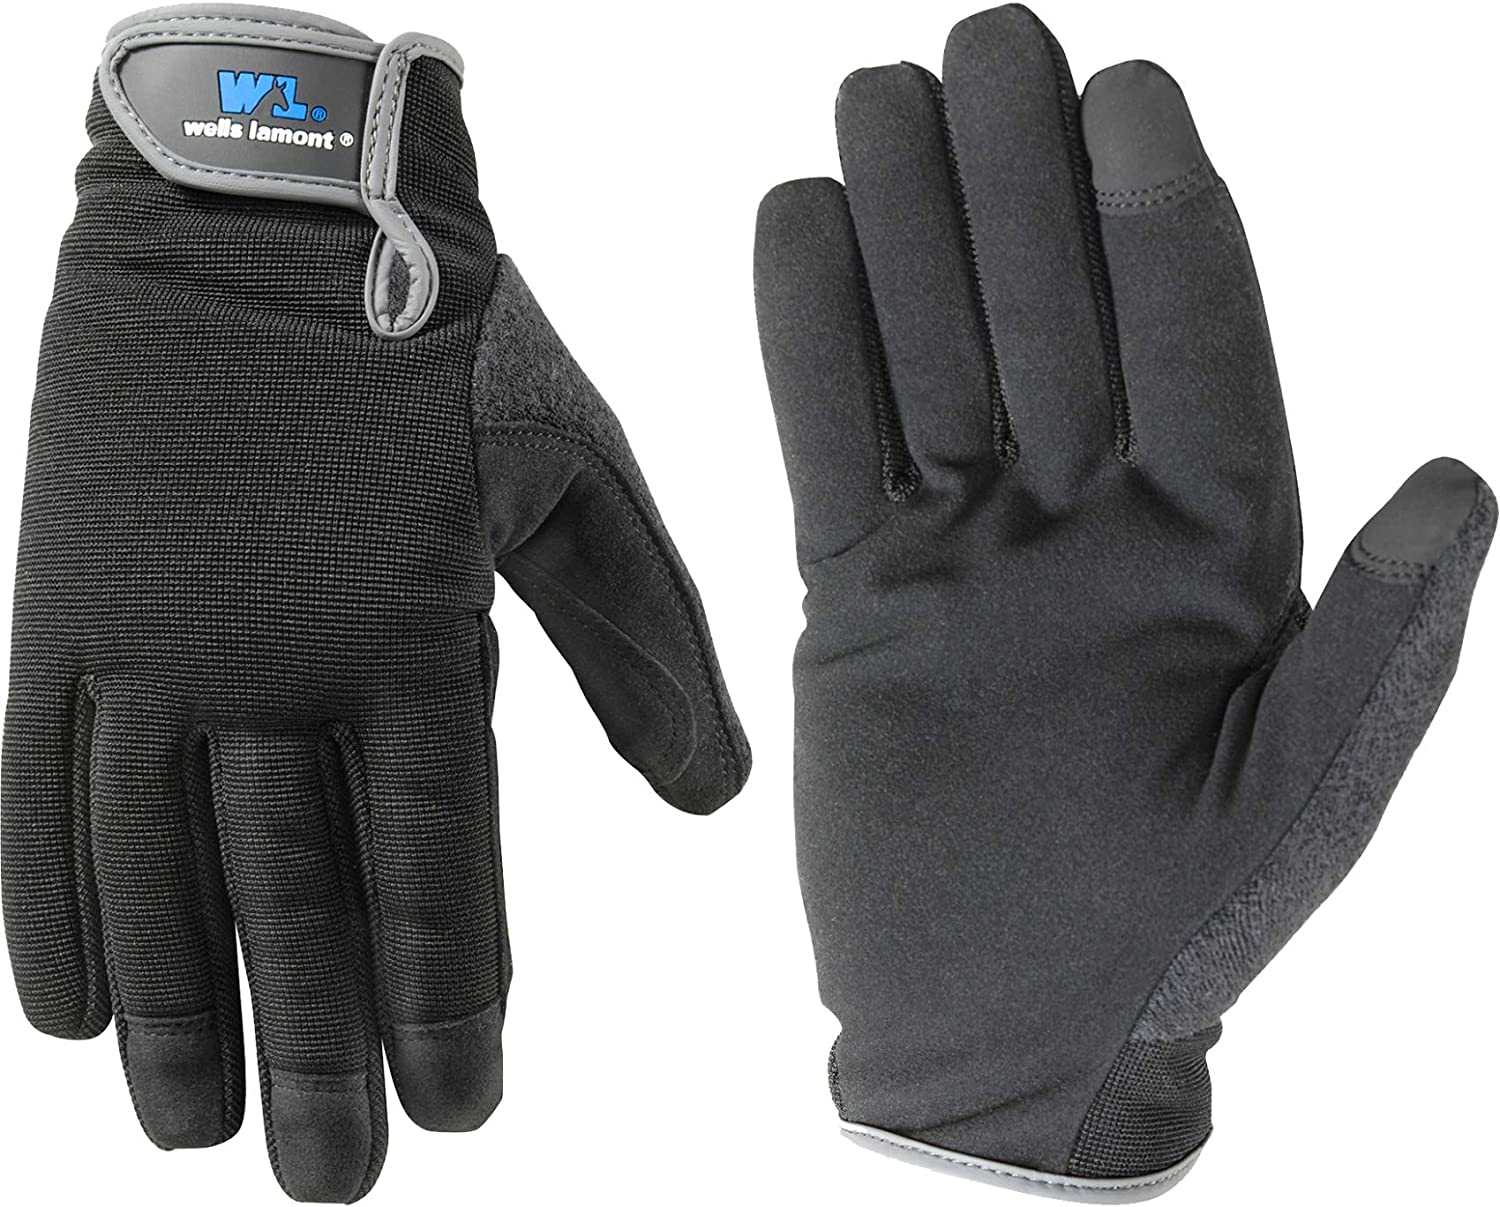 Wells Lamont Synthetic Leather Work Gloves, High Dexterity, Extra Large (7700XL) , Black